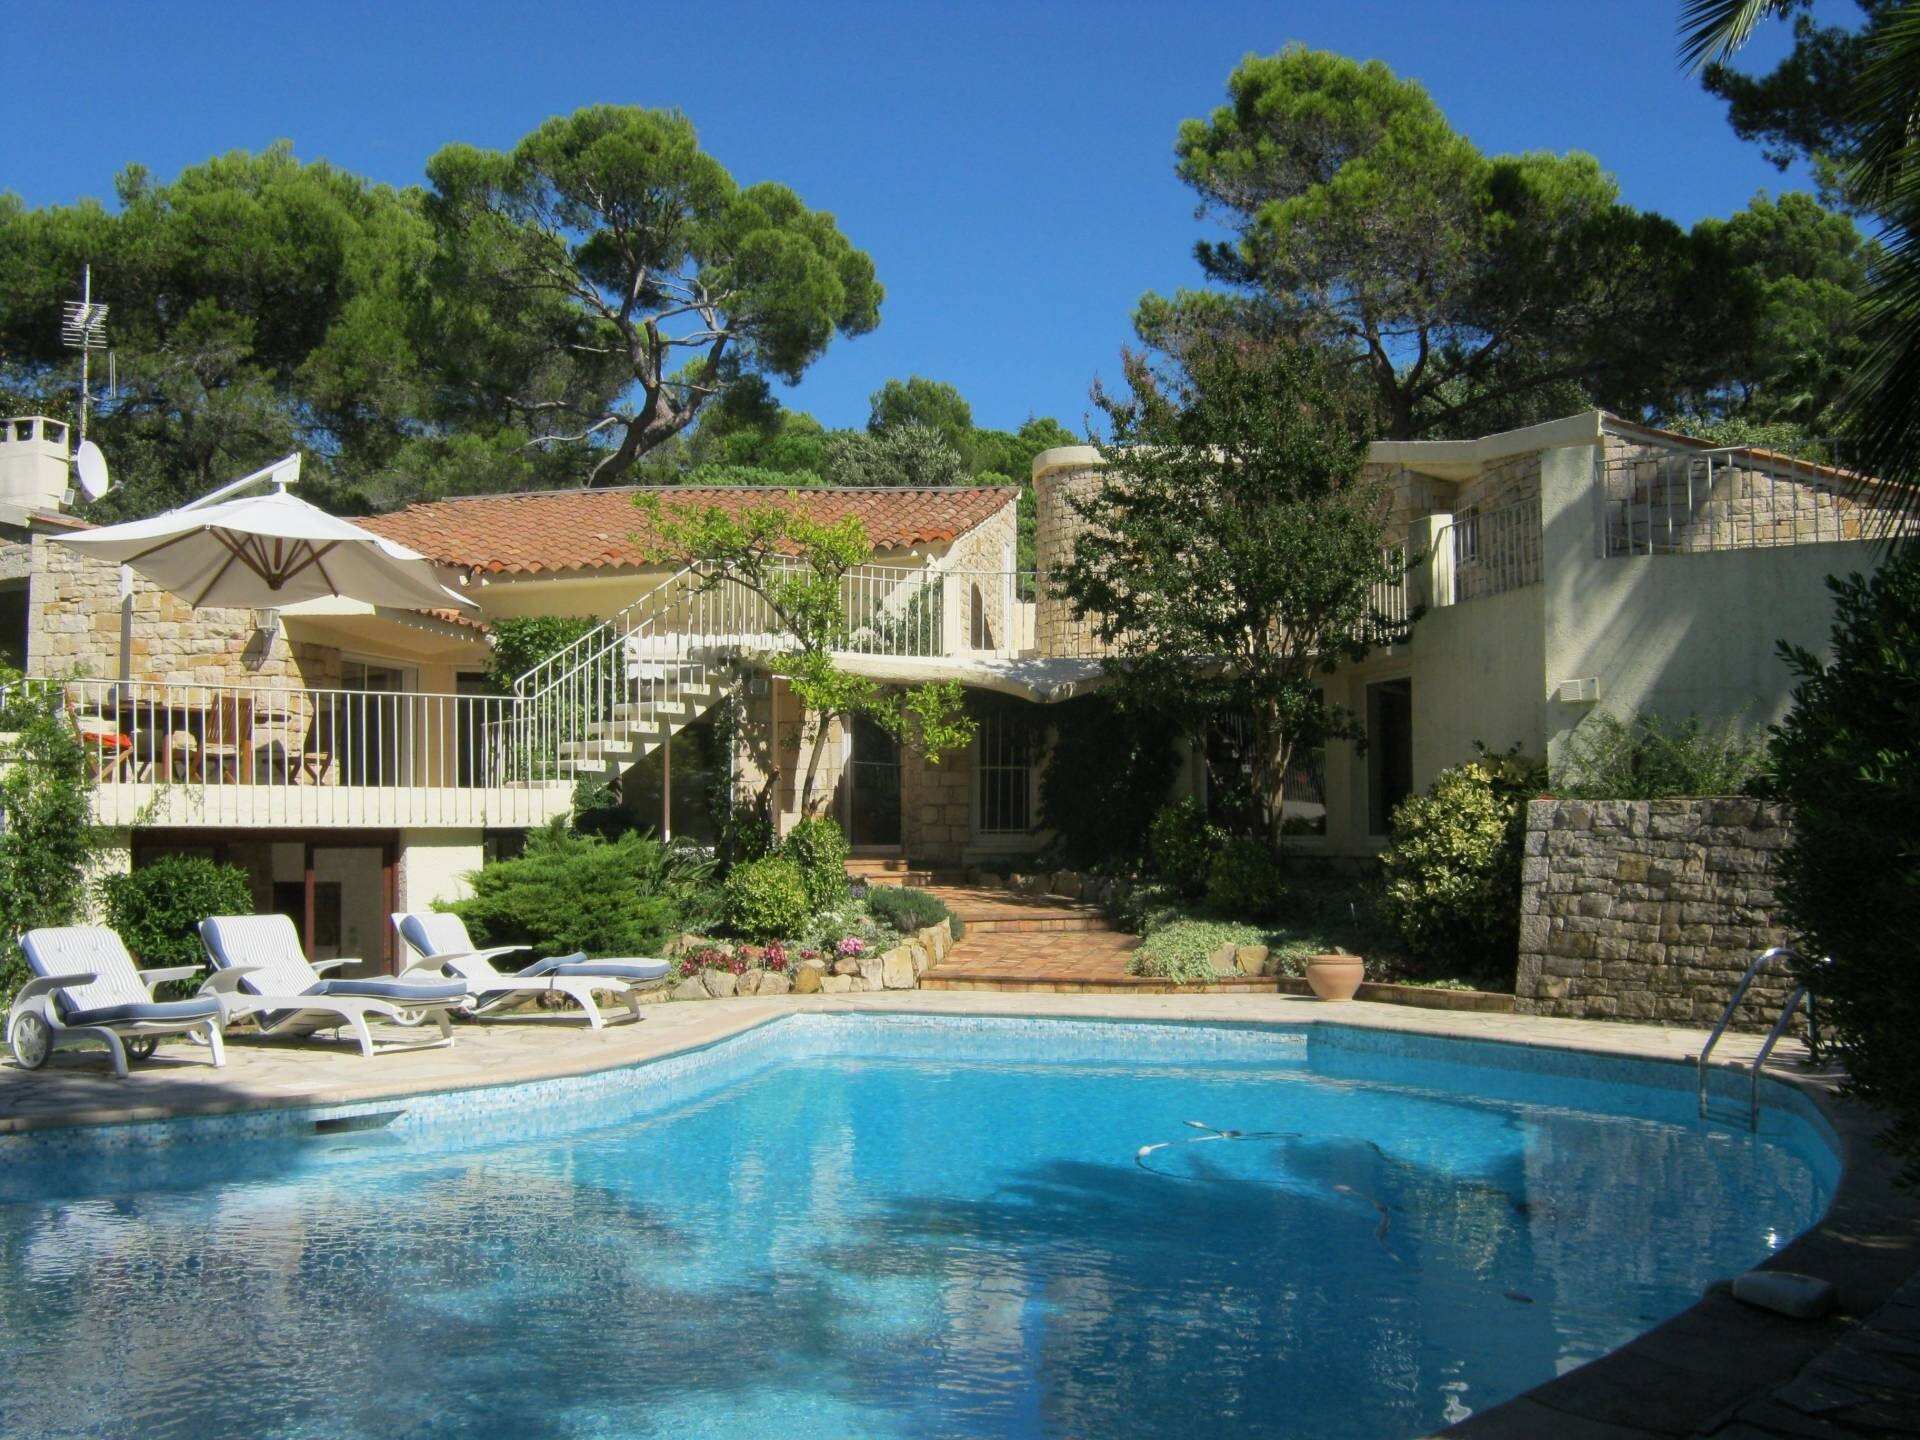 Luxury Bungalow In Mougins With Swimmingpool HD Wallpapers